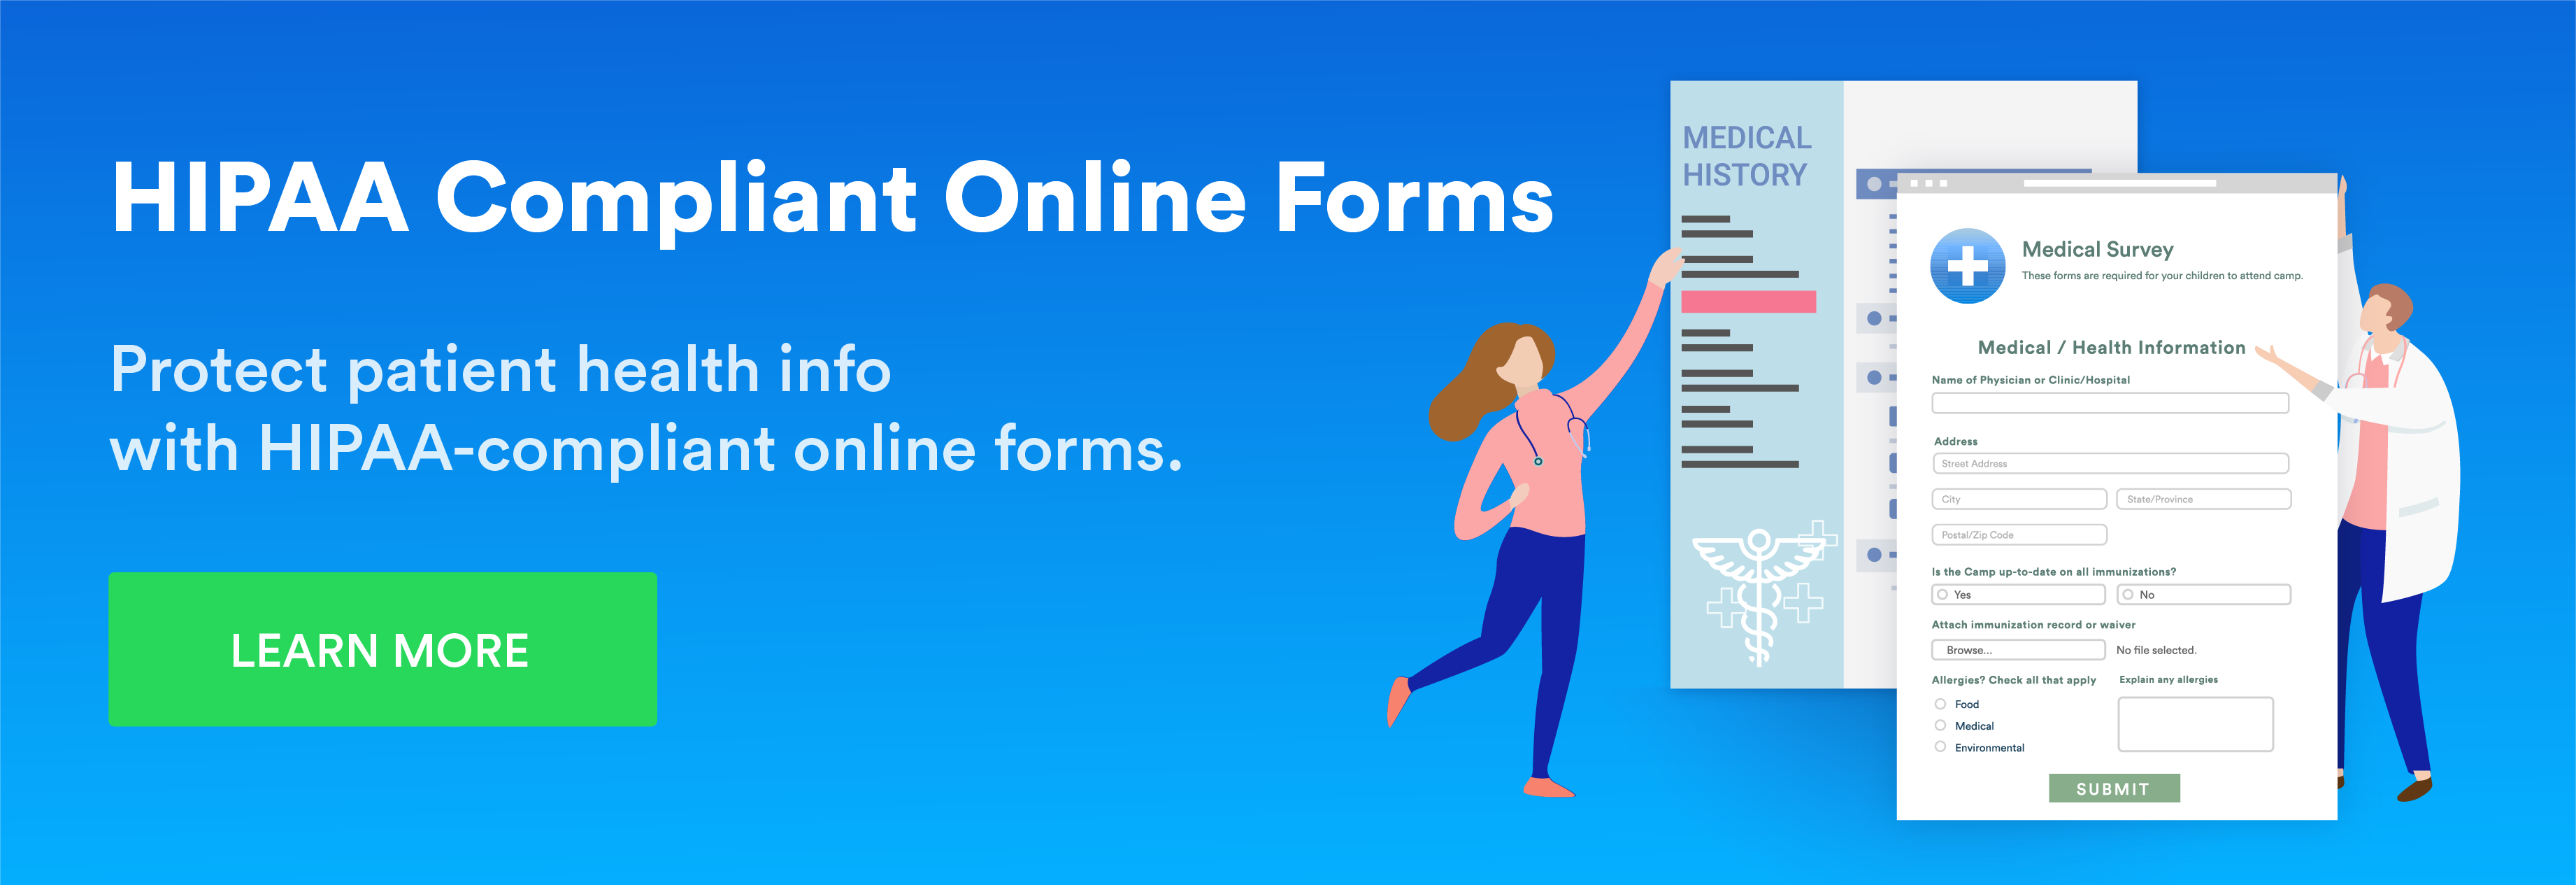 Protect patient health info with HIPAA-compliant online forms.